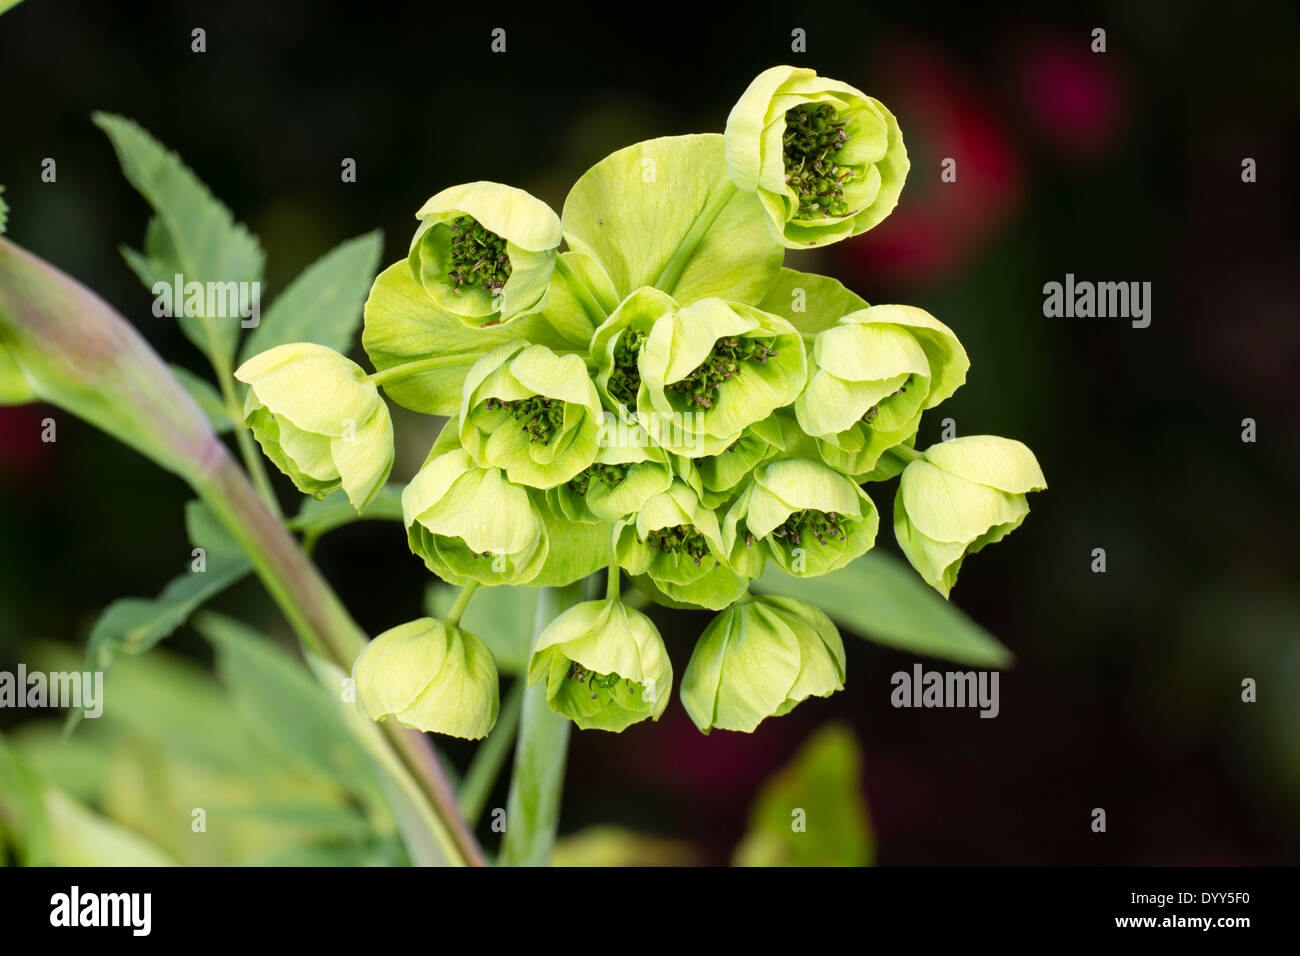 Fresh spring flowers of the mexican perennial mathiasella stock fresh spring flowers of the mexican perennial mathiasella bupleuroides green dream mightylinksfo